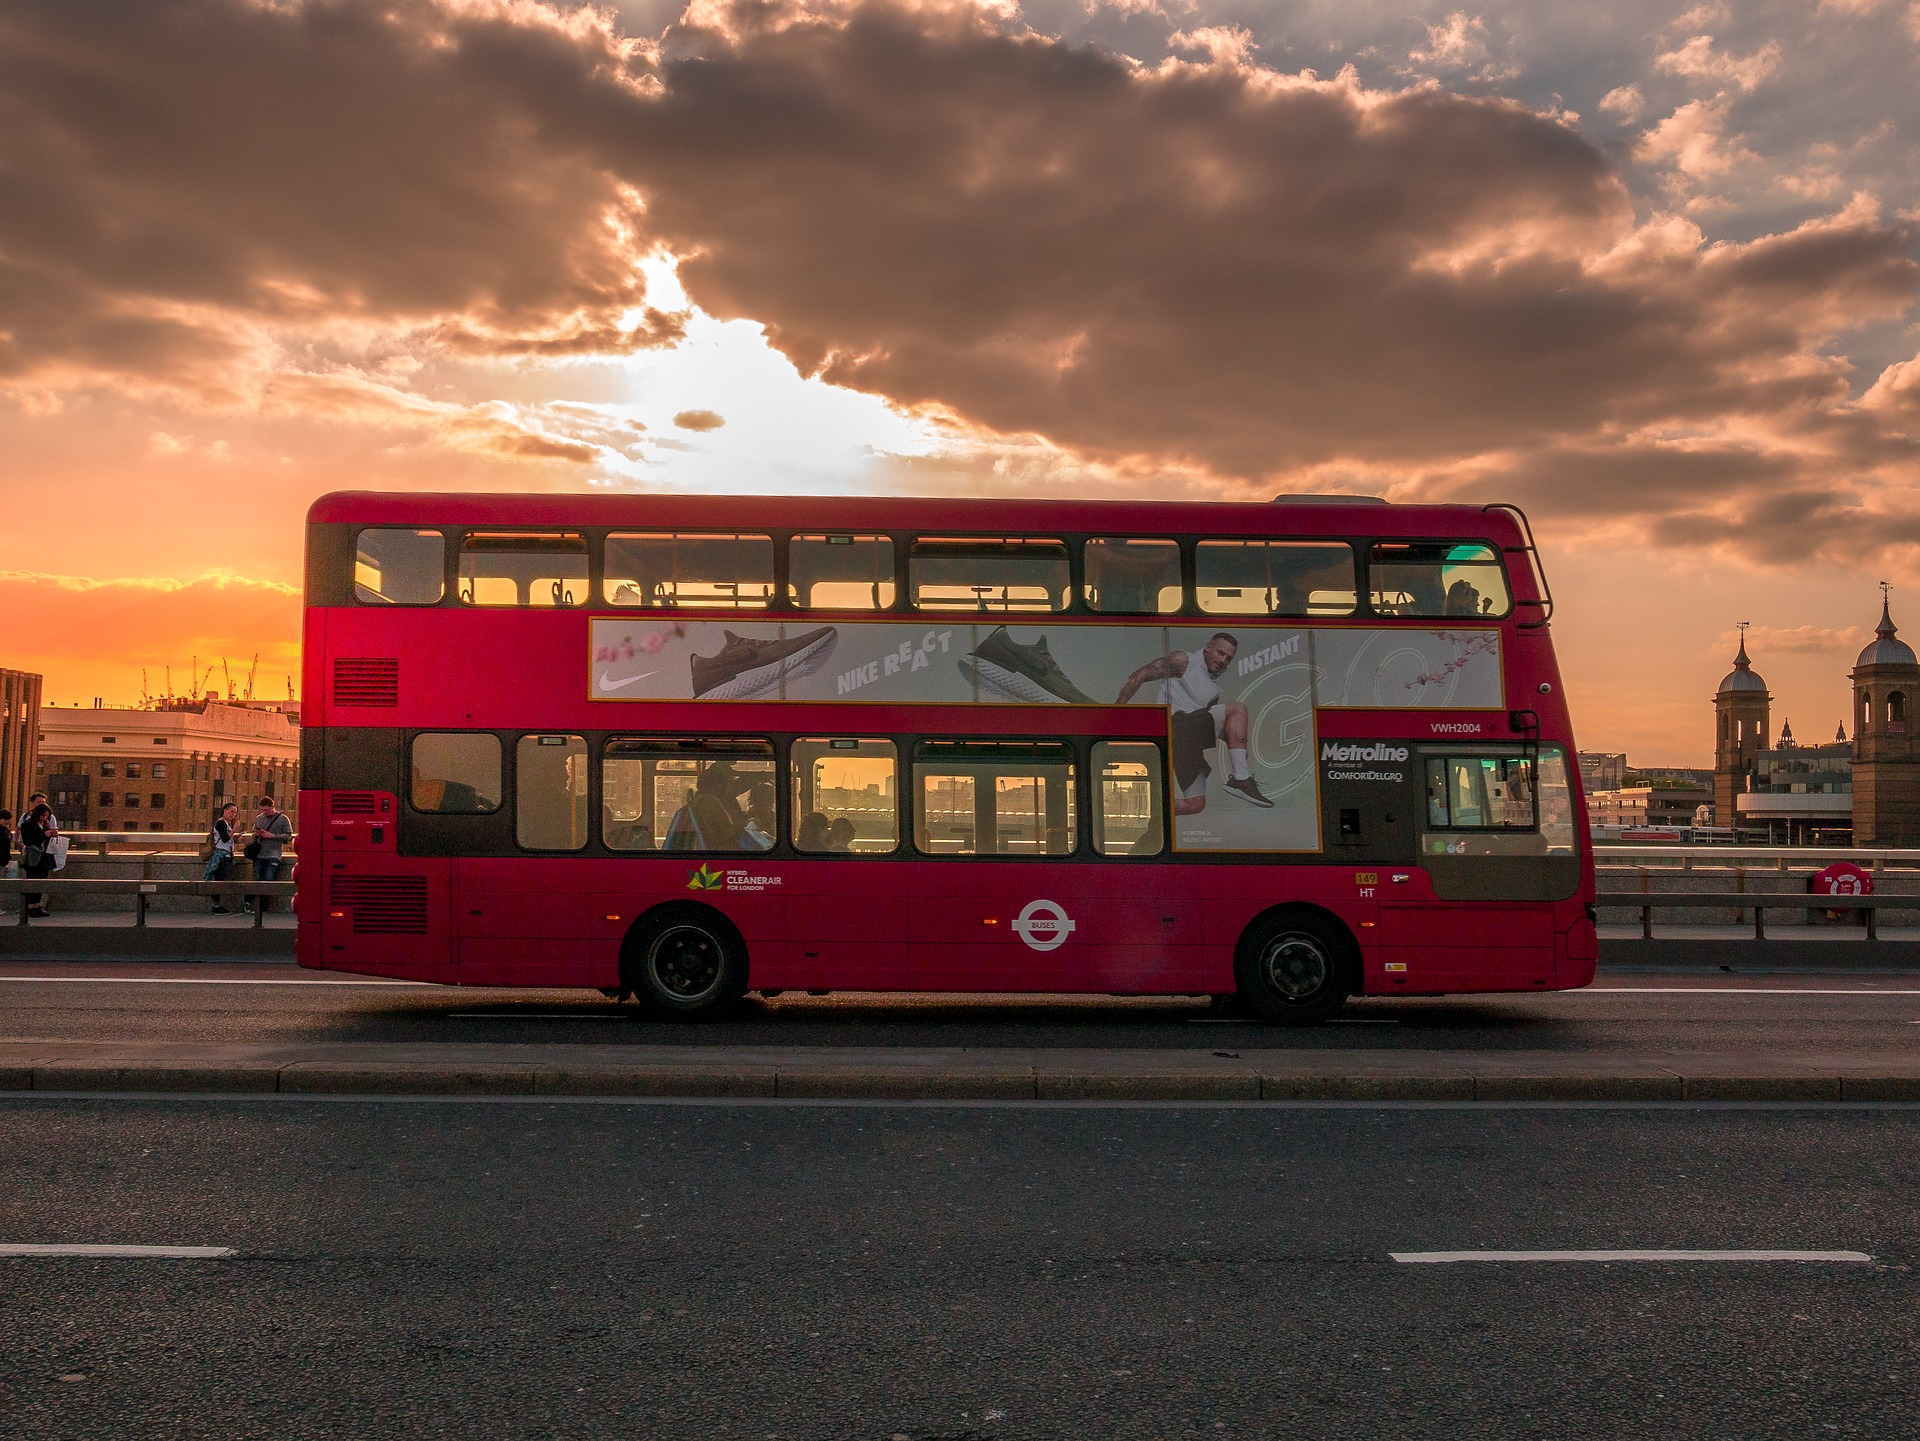 Travel via bus transport in London